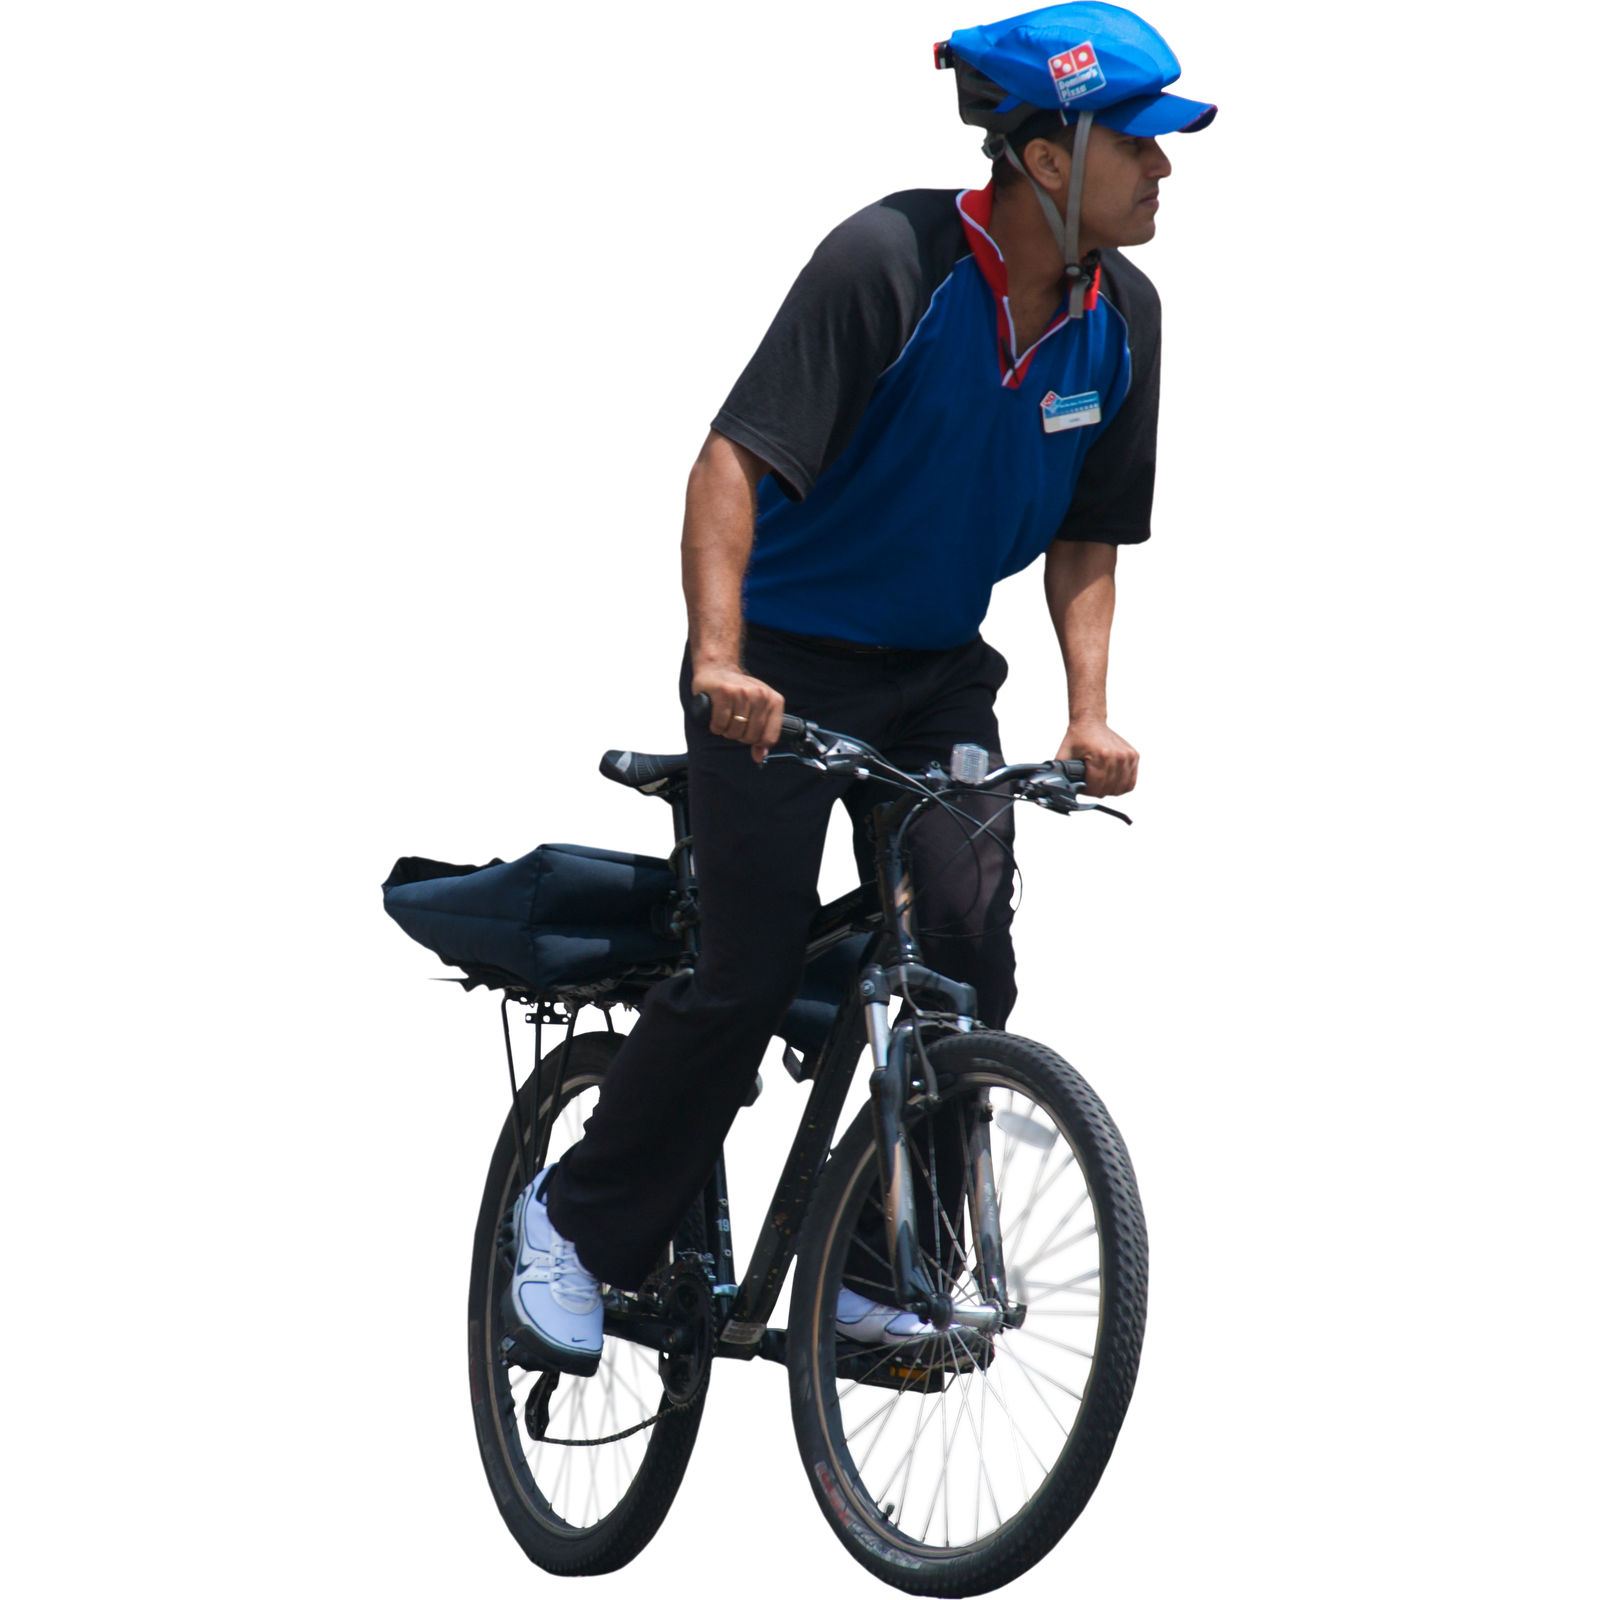 Riding bicycle png. Bicycles images free download